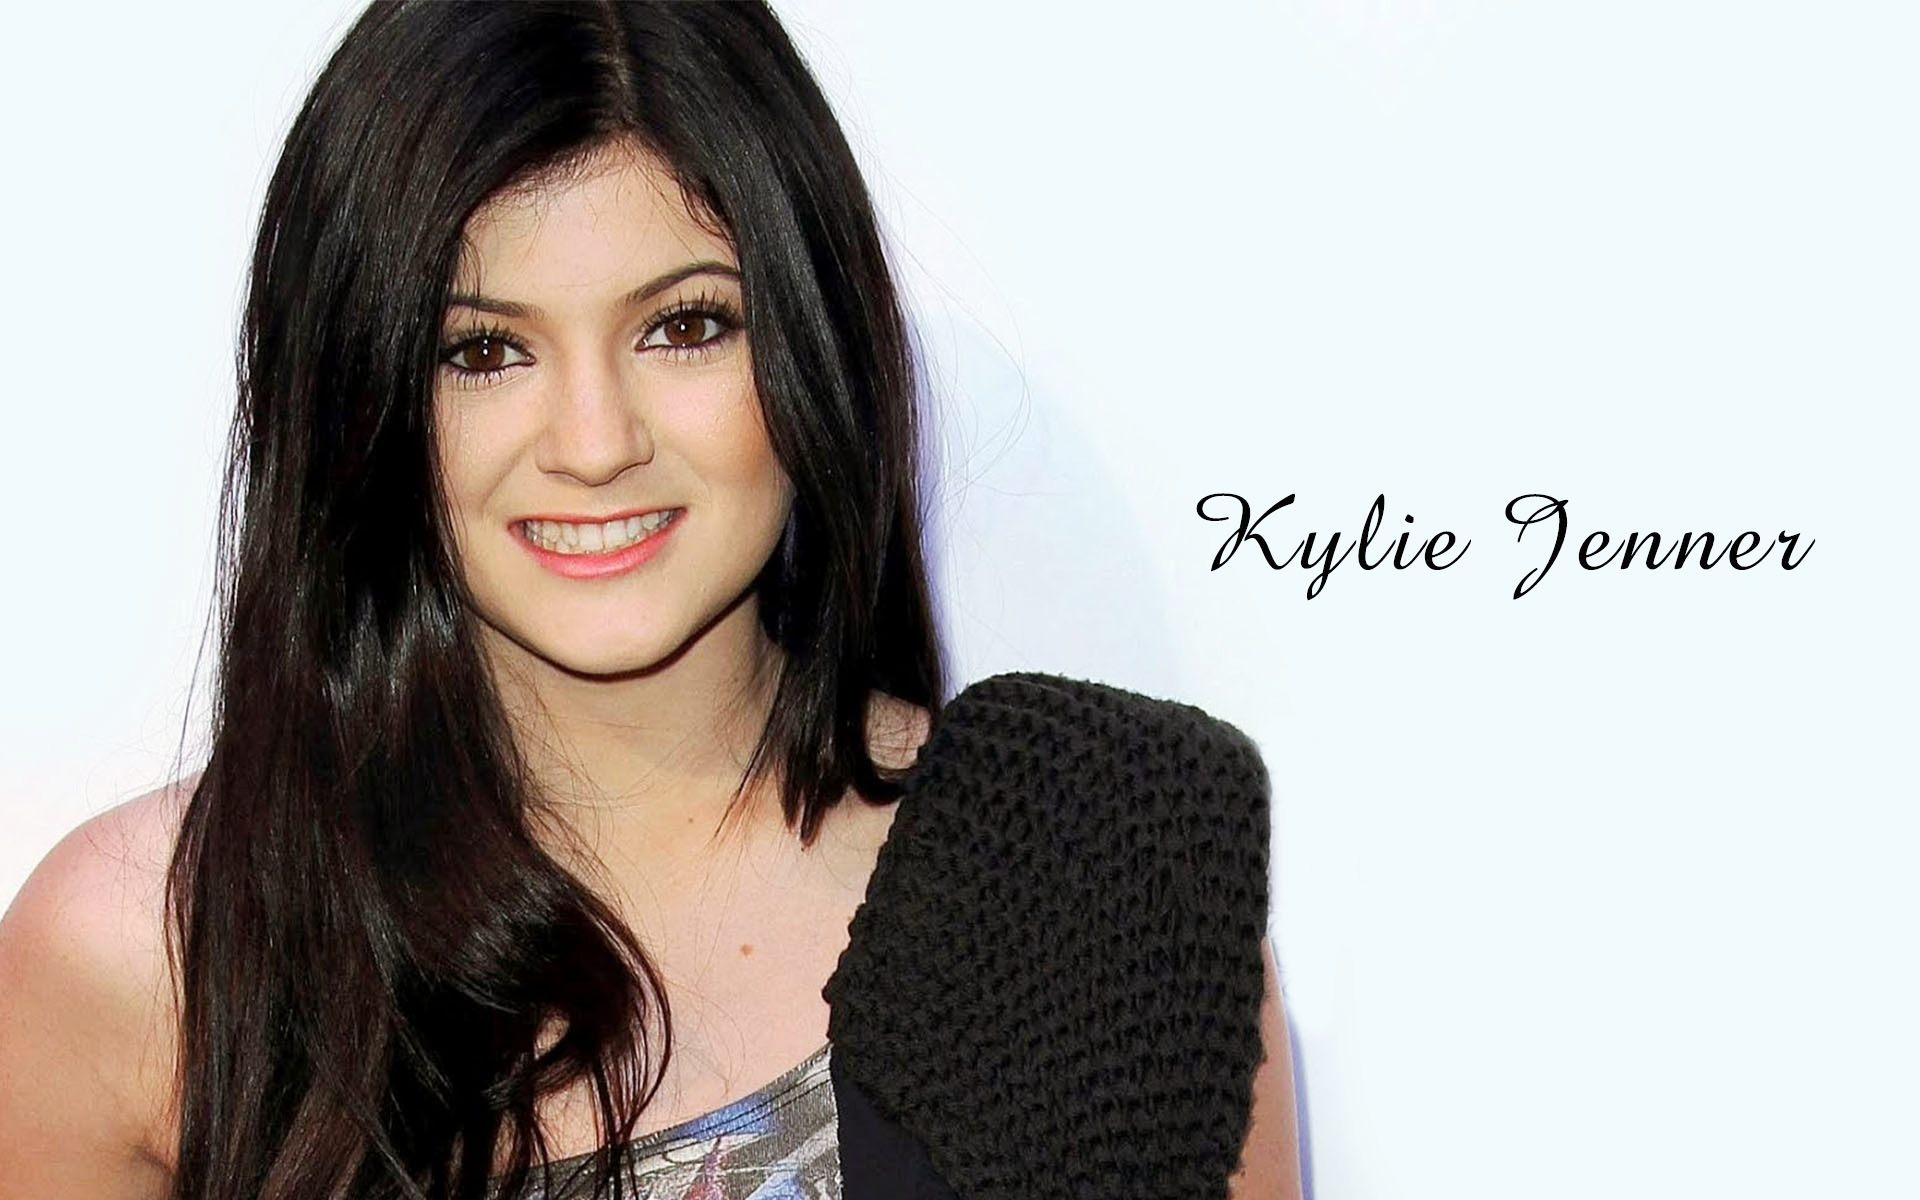 Kylie Jenner Kristen HD Wallpapers Of High Quality Download